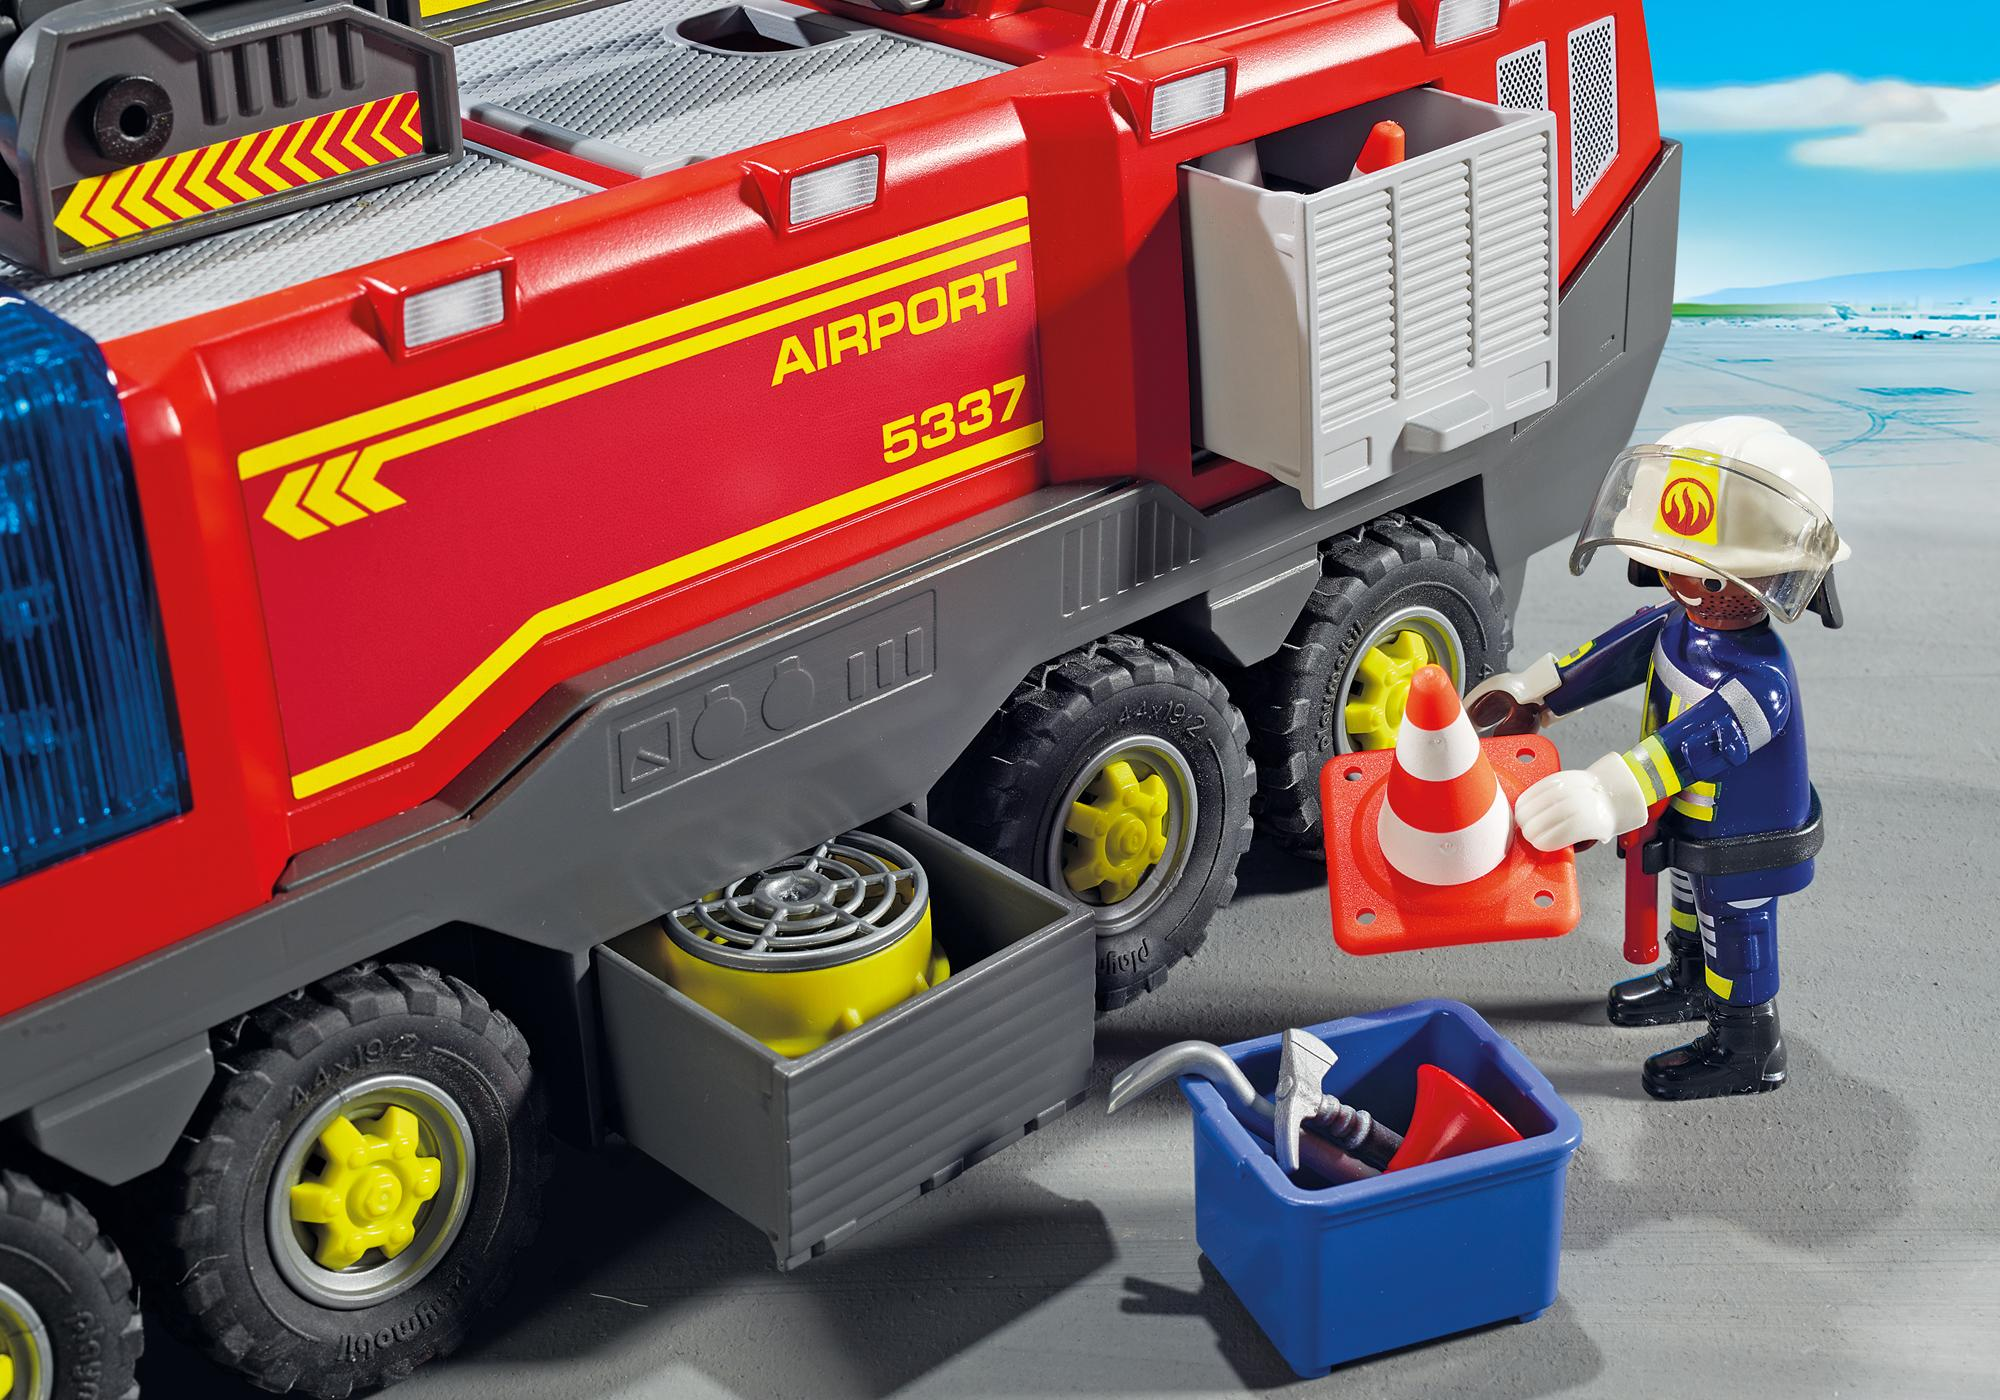 http://media.playmobil.com/i/playmobil/5337_product_extra3/Airport Fire Engine with Lights and Sound